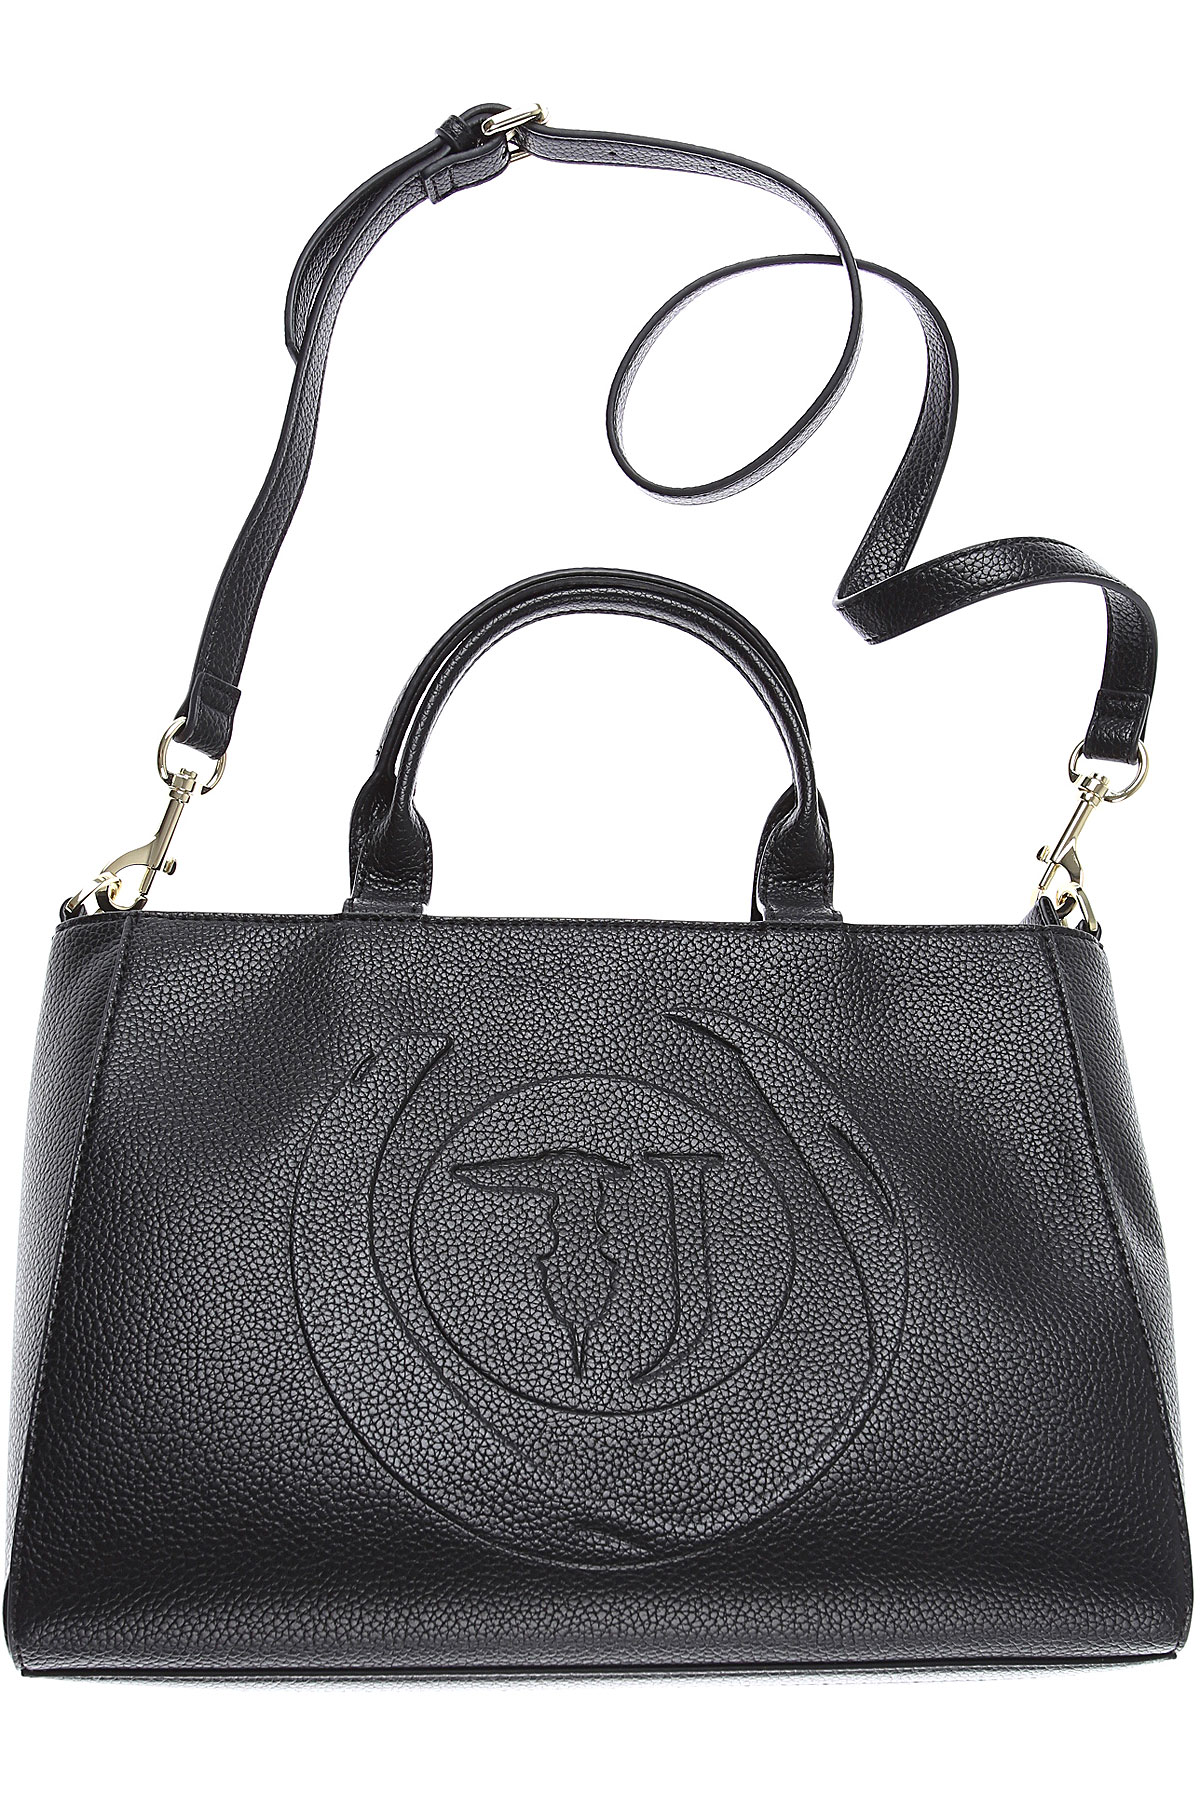 Trussardi Tote Bag On Sale in Outlet, Black, Tumbled Eco Leather, 2019